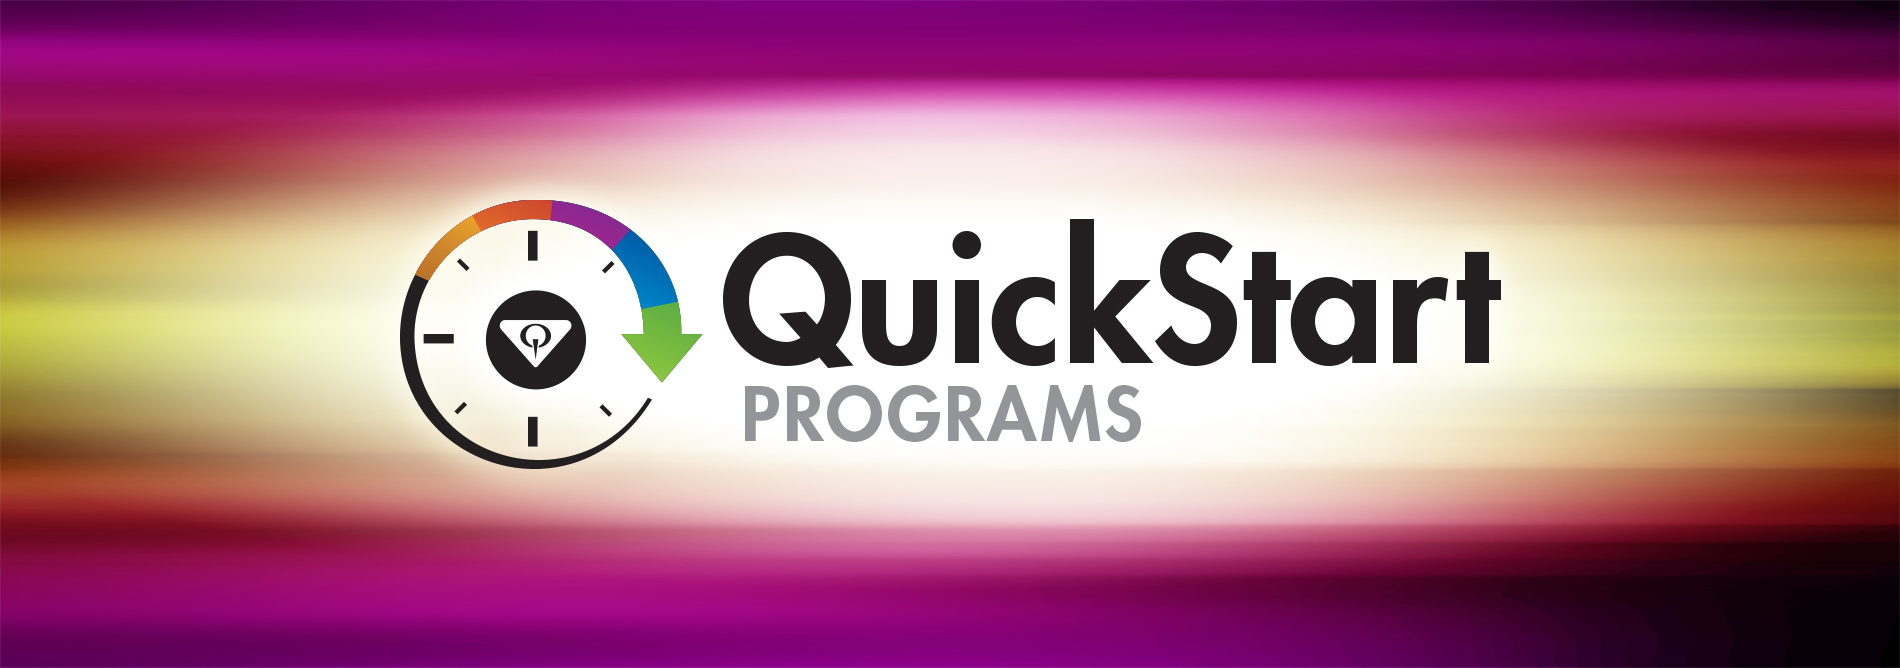 QubicaAMF-bowling-products-scoring-quick-start-programs-banner.jpg